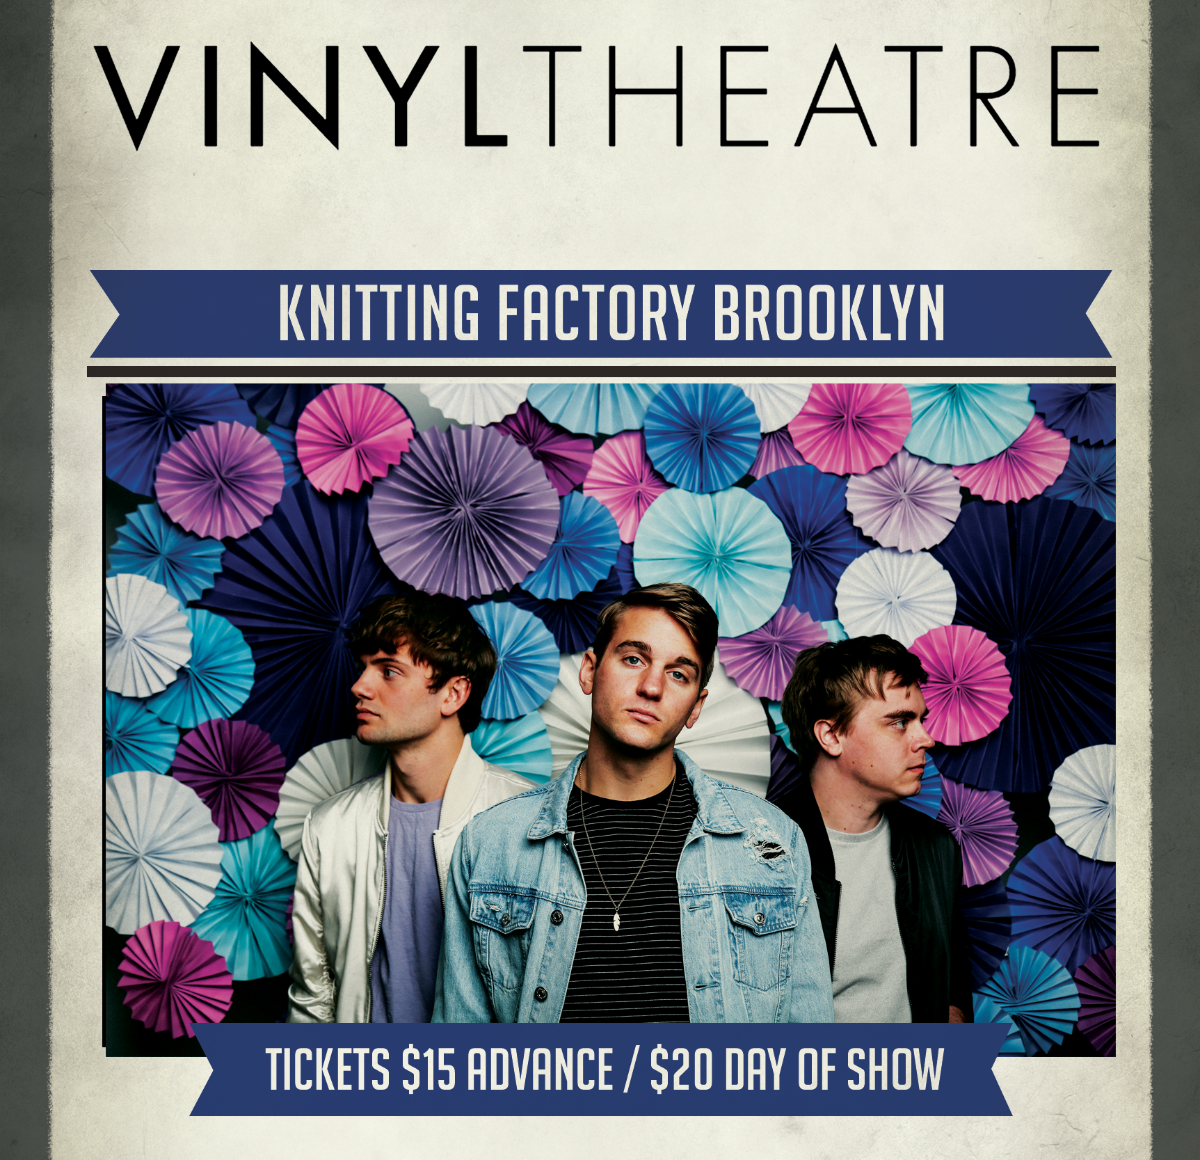 Knitting Factory Brooklyn Tickets : Vinyl theatre shiffley valley latini dylan rockoff